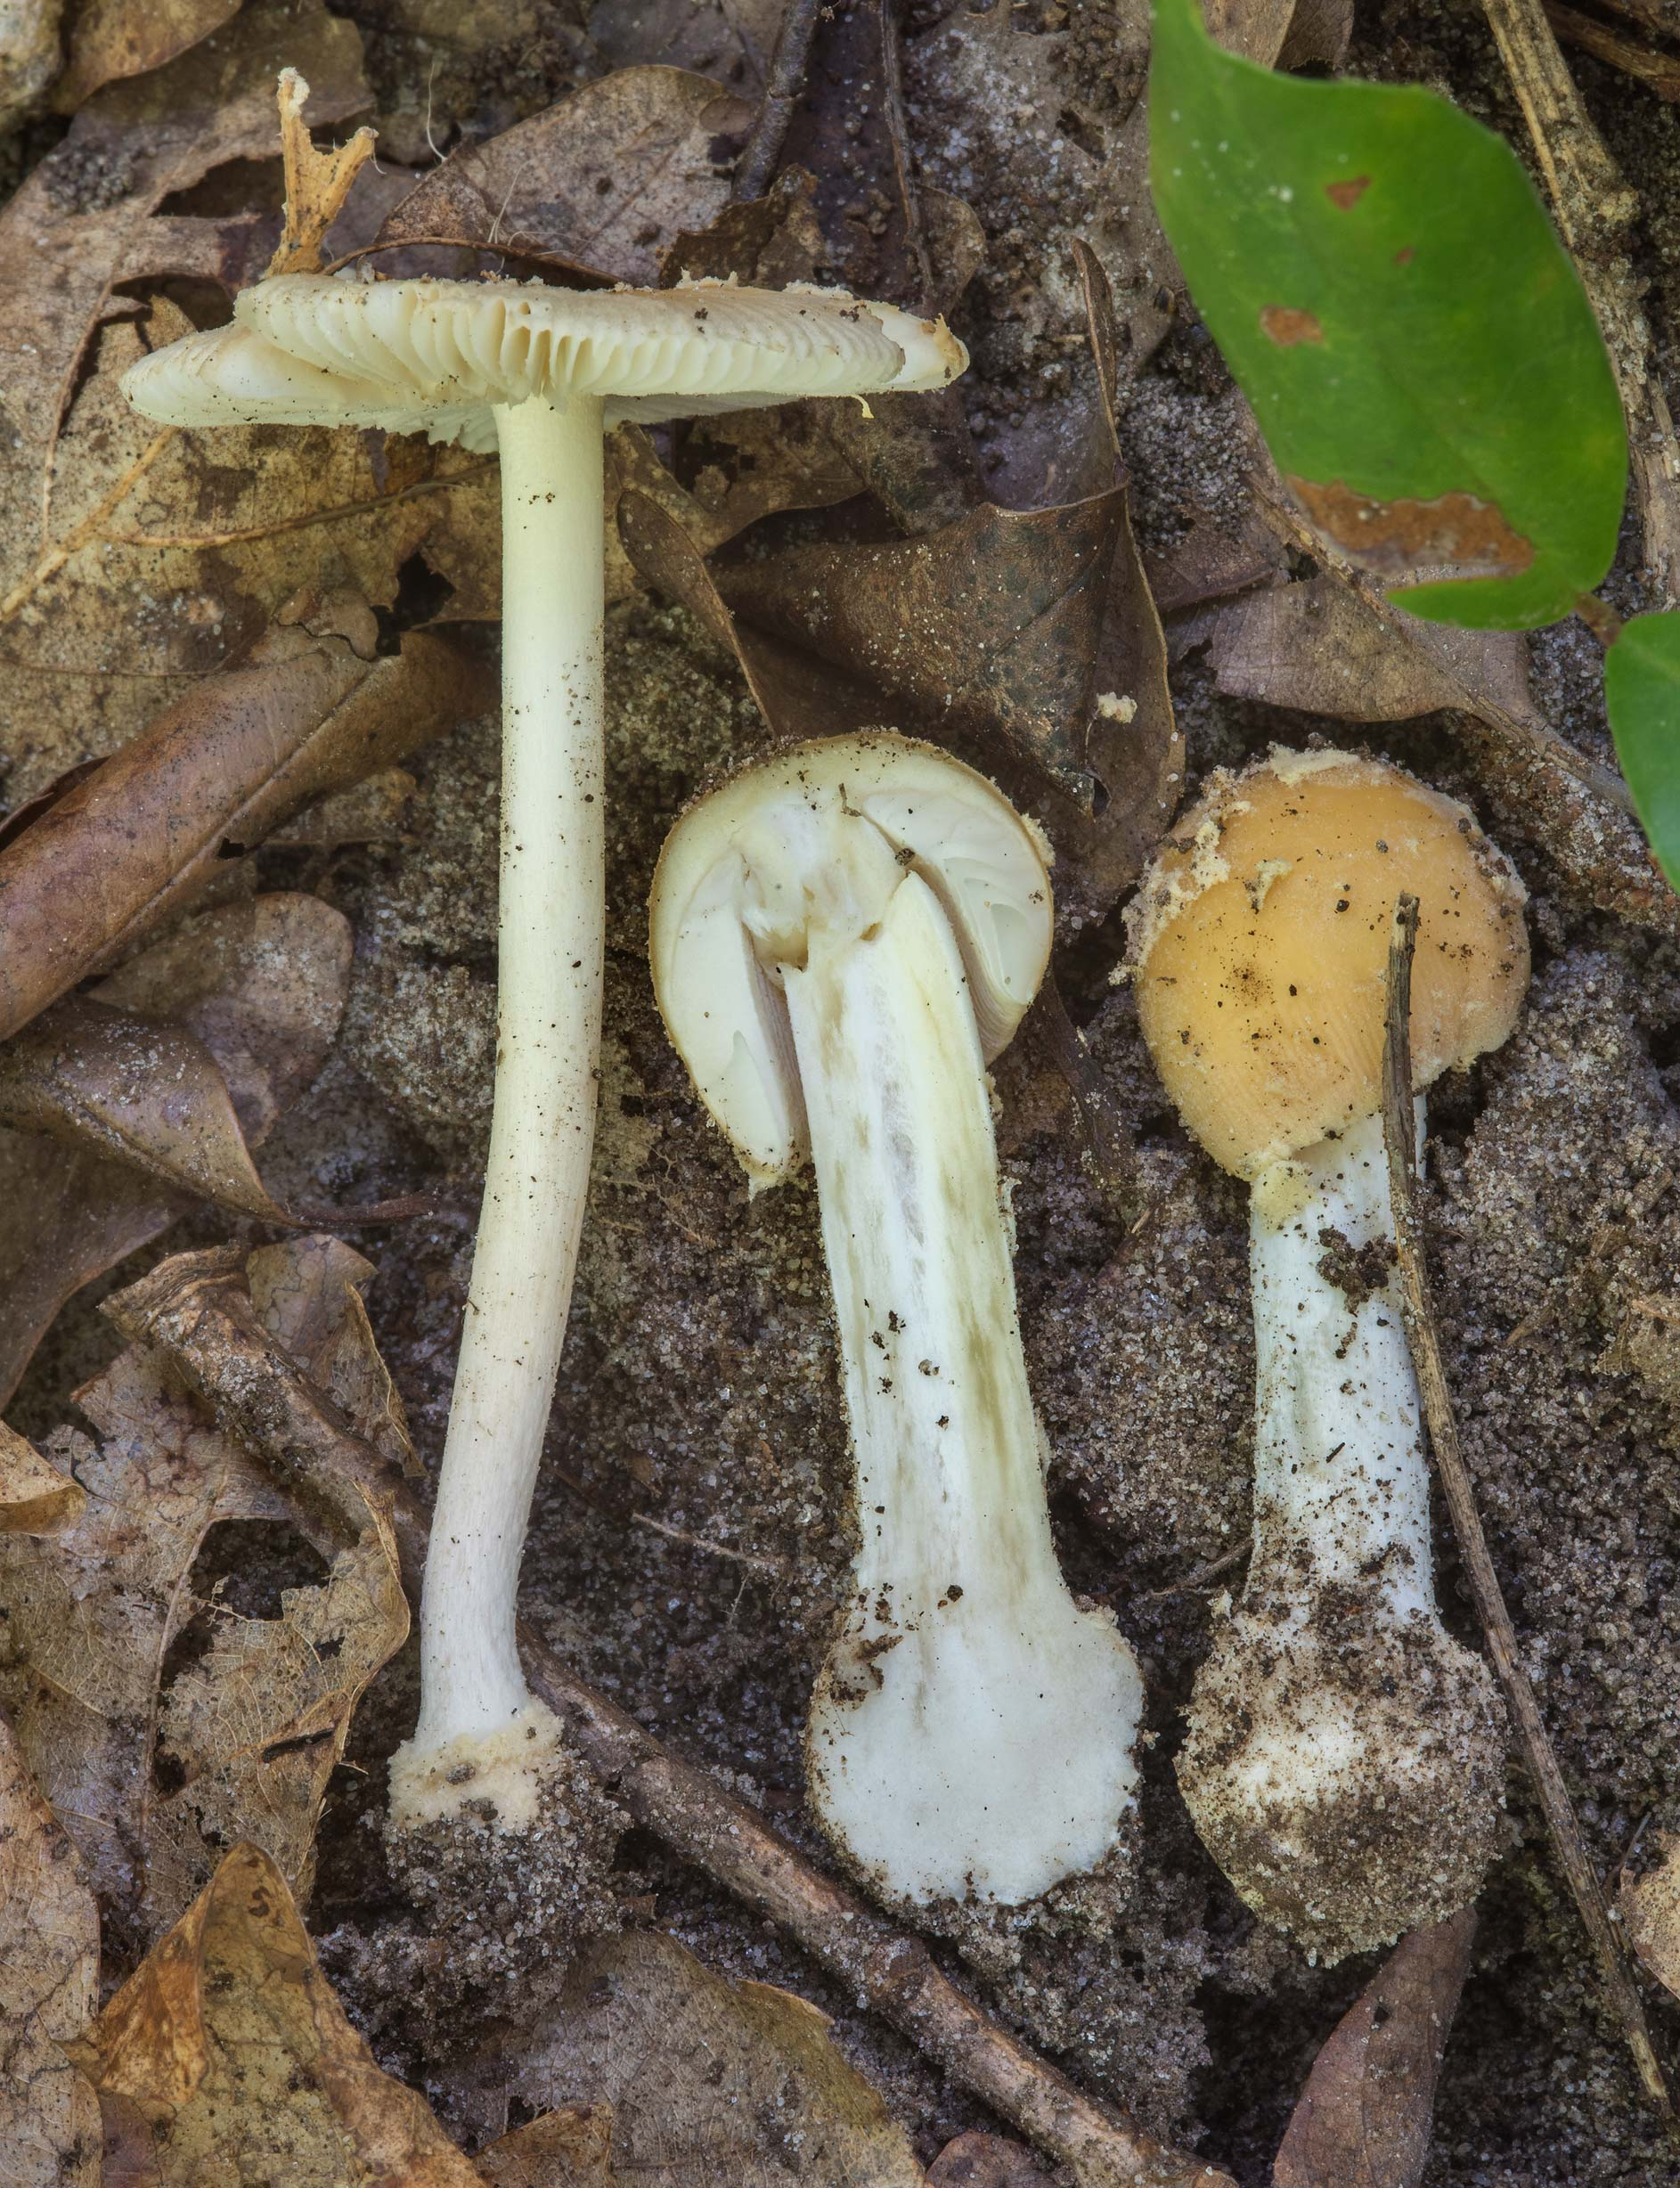 Dissected mushrooms Amanita sect. Amanita in Big...National Forest. Shepherd, Texas